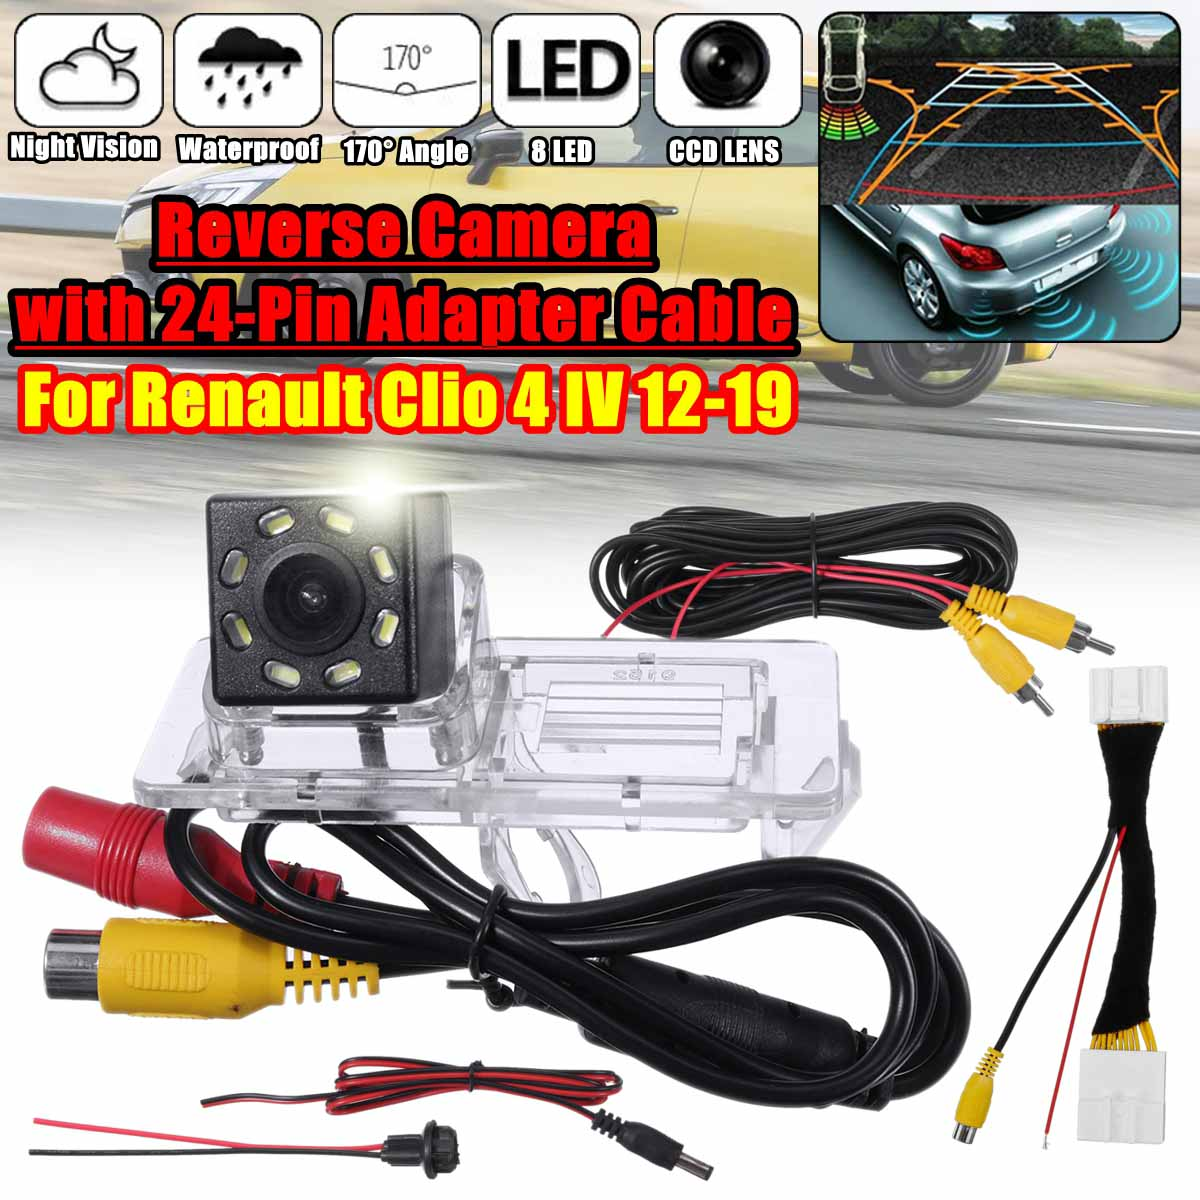 Car Rear View Back Up Reverse Camera Sets For Renault Clio 4 IV 2012-2019 Clear Night Vision RCA with 24Pin Adapter Cable